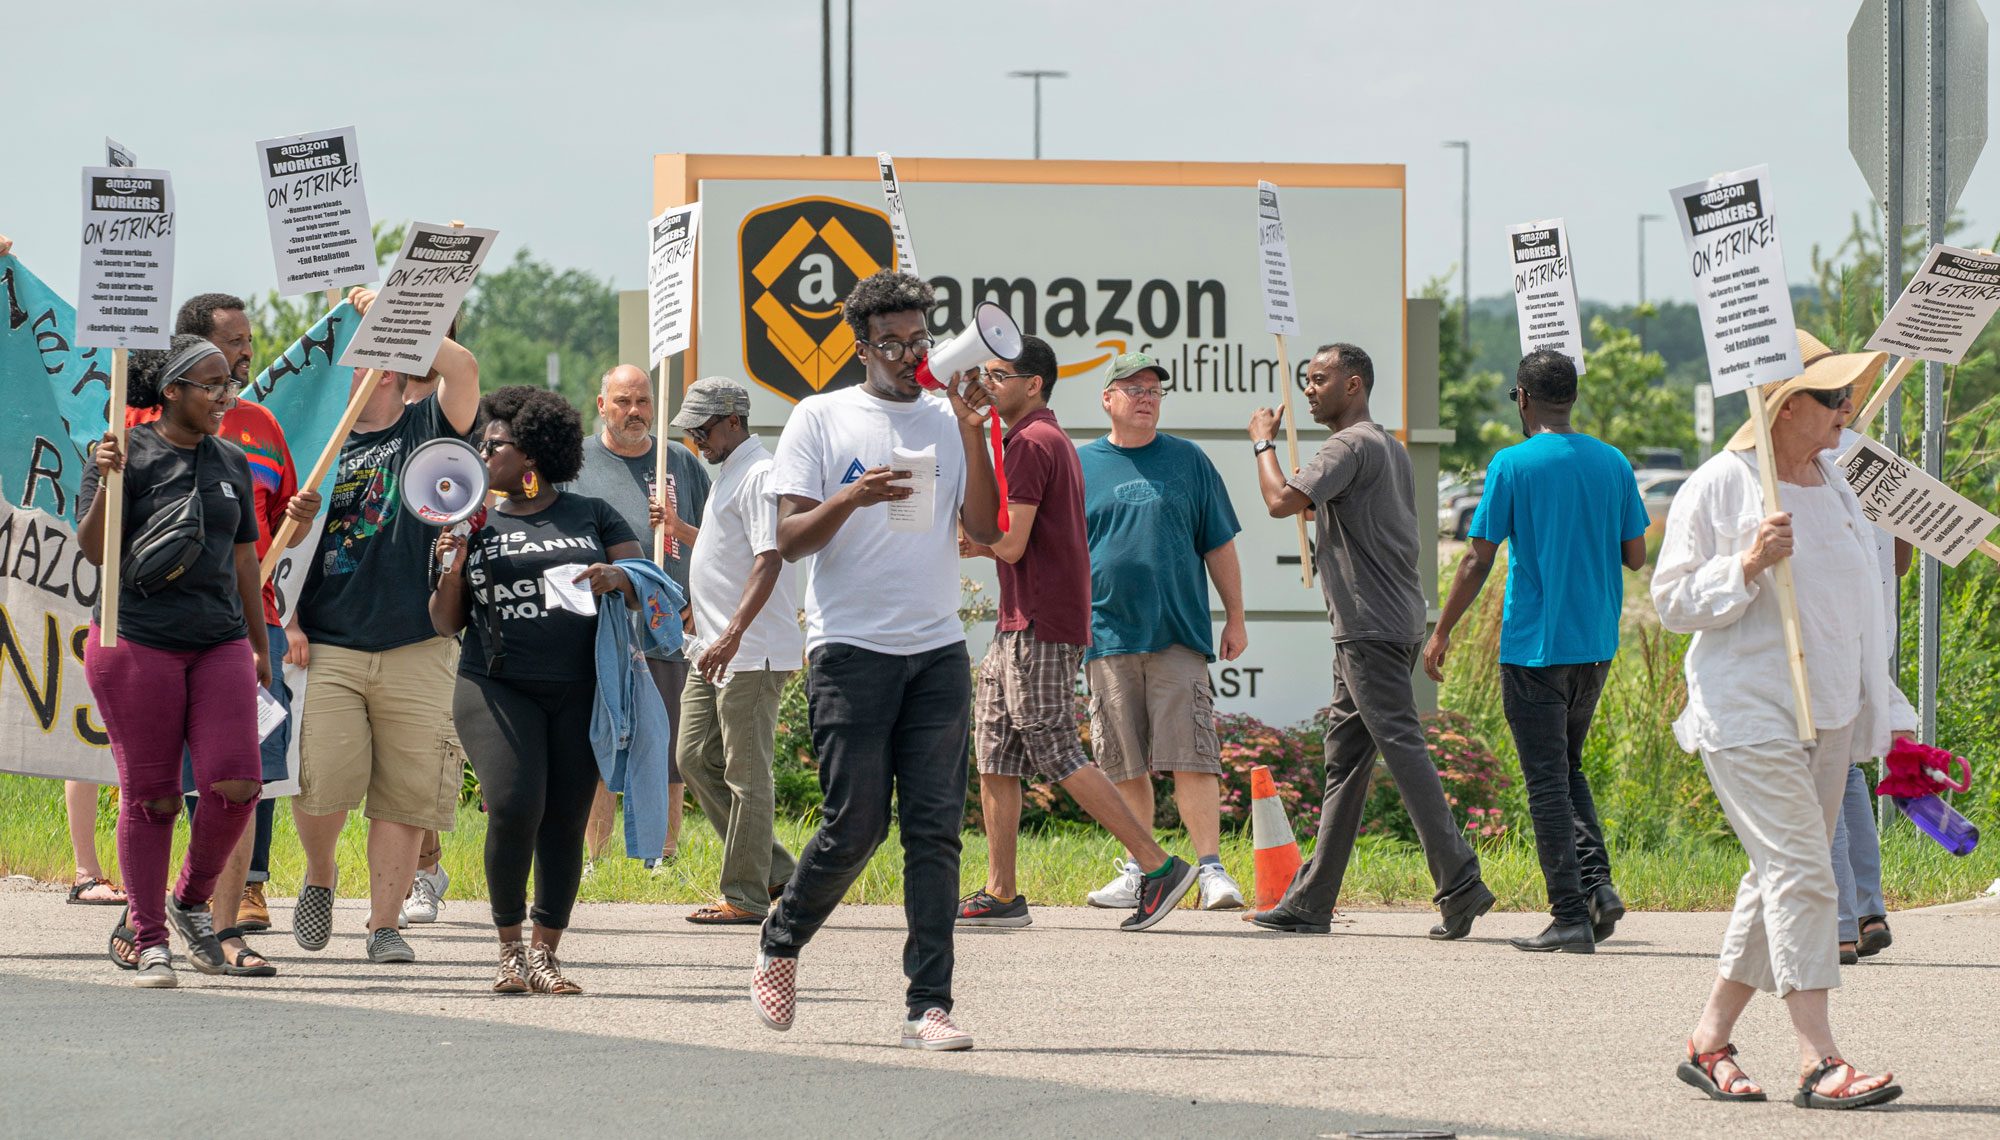 Amazon employees are going to strike over the firm's climate policies